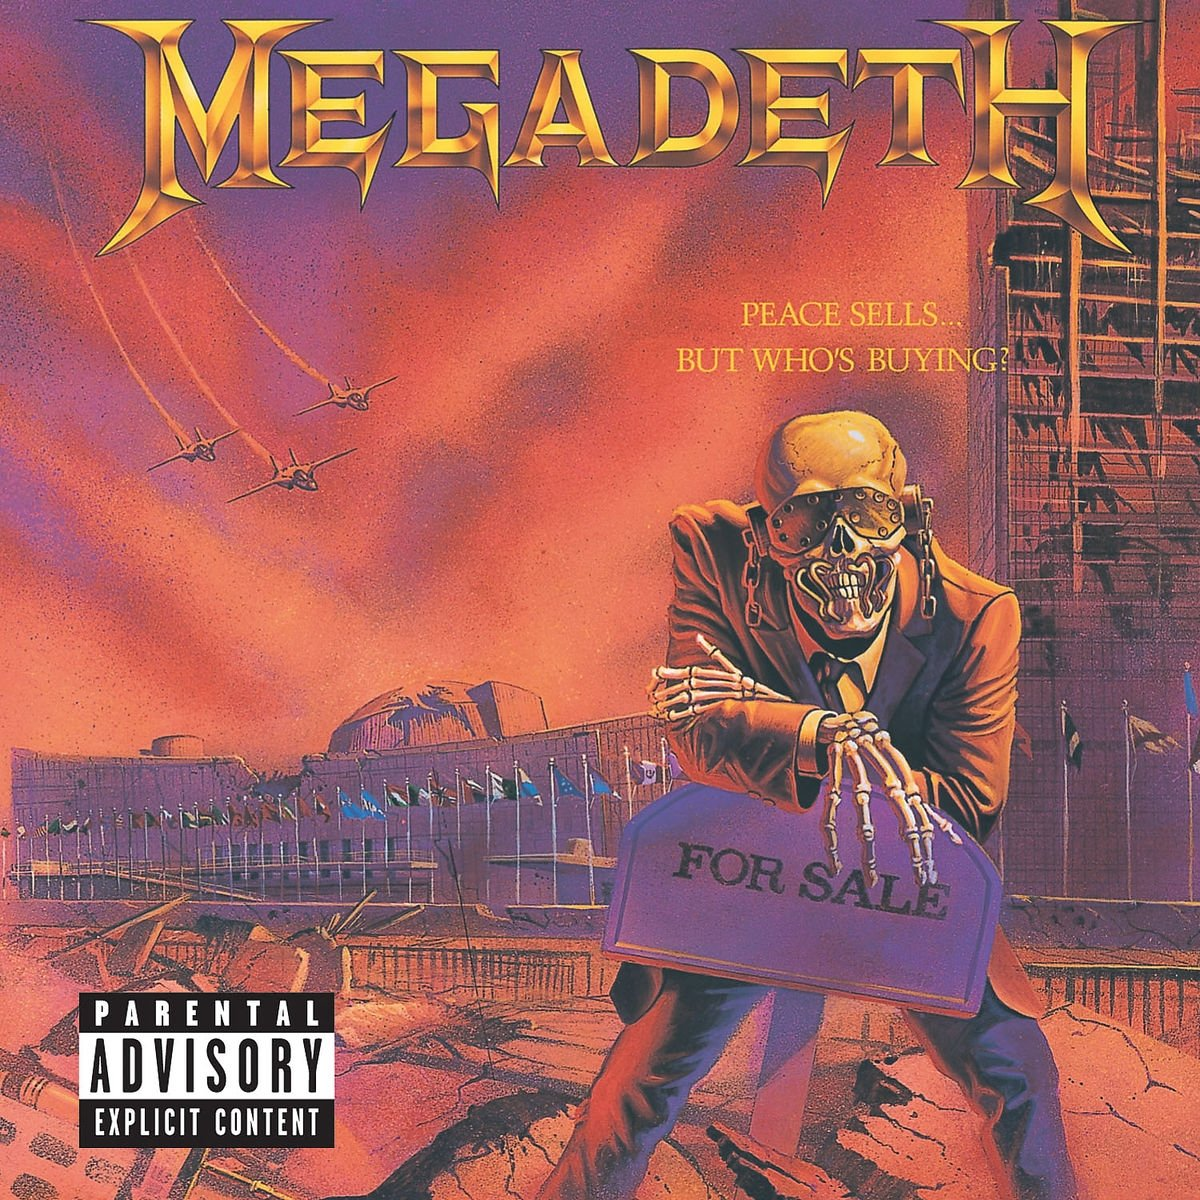 Megadeth - Peace Sells...But Who's Buying? - Amazon.com Music